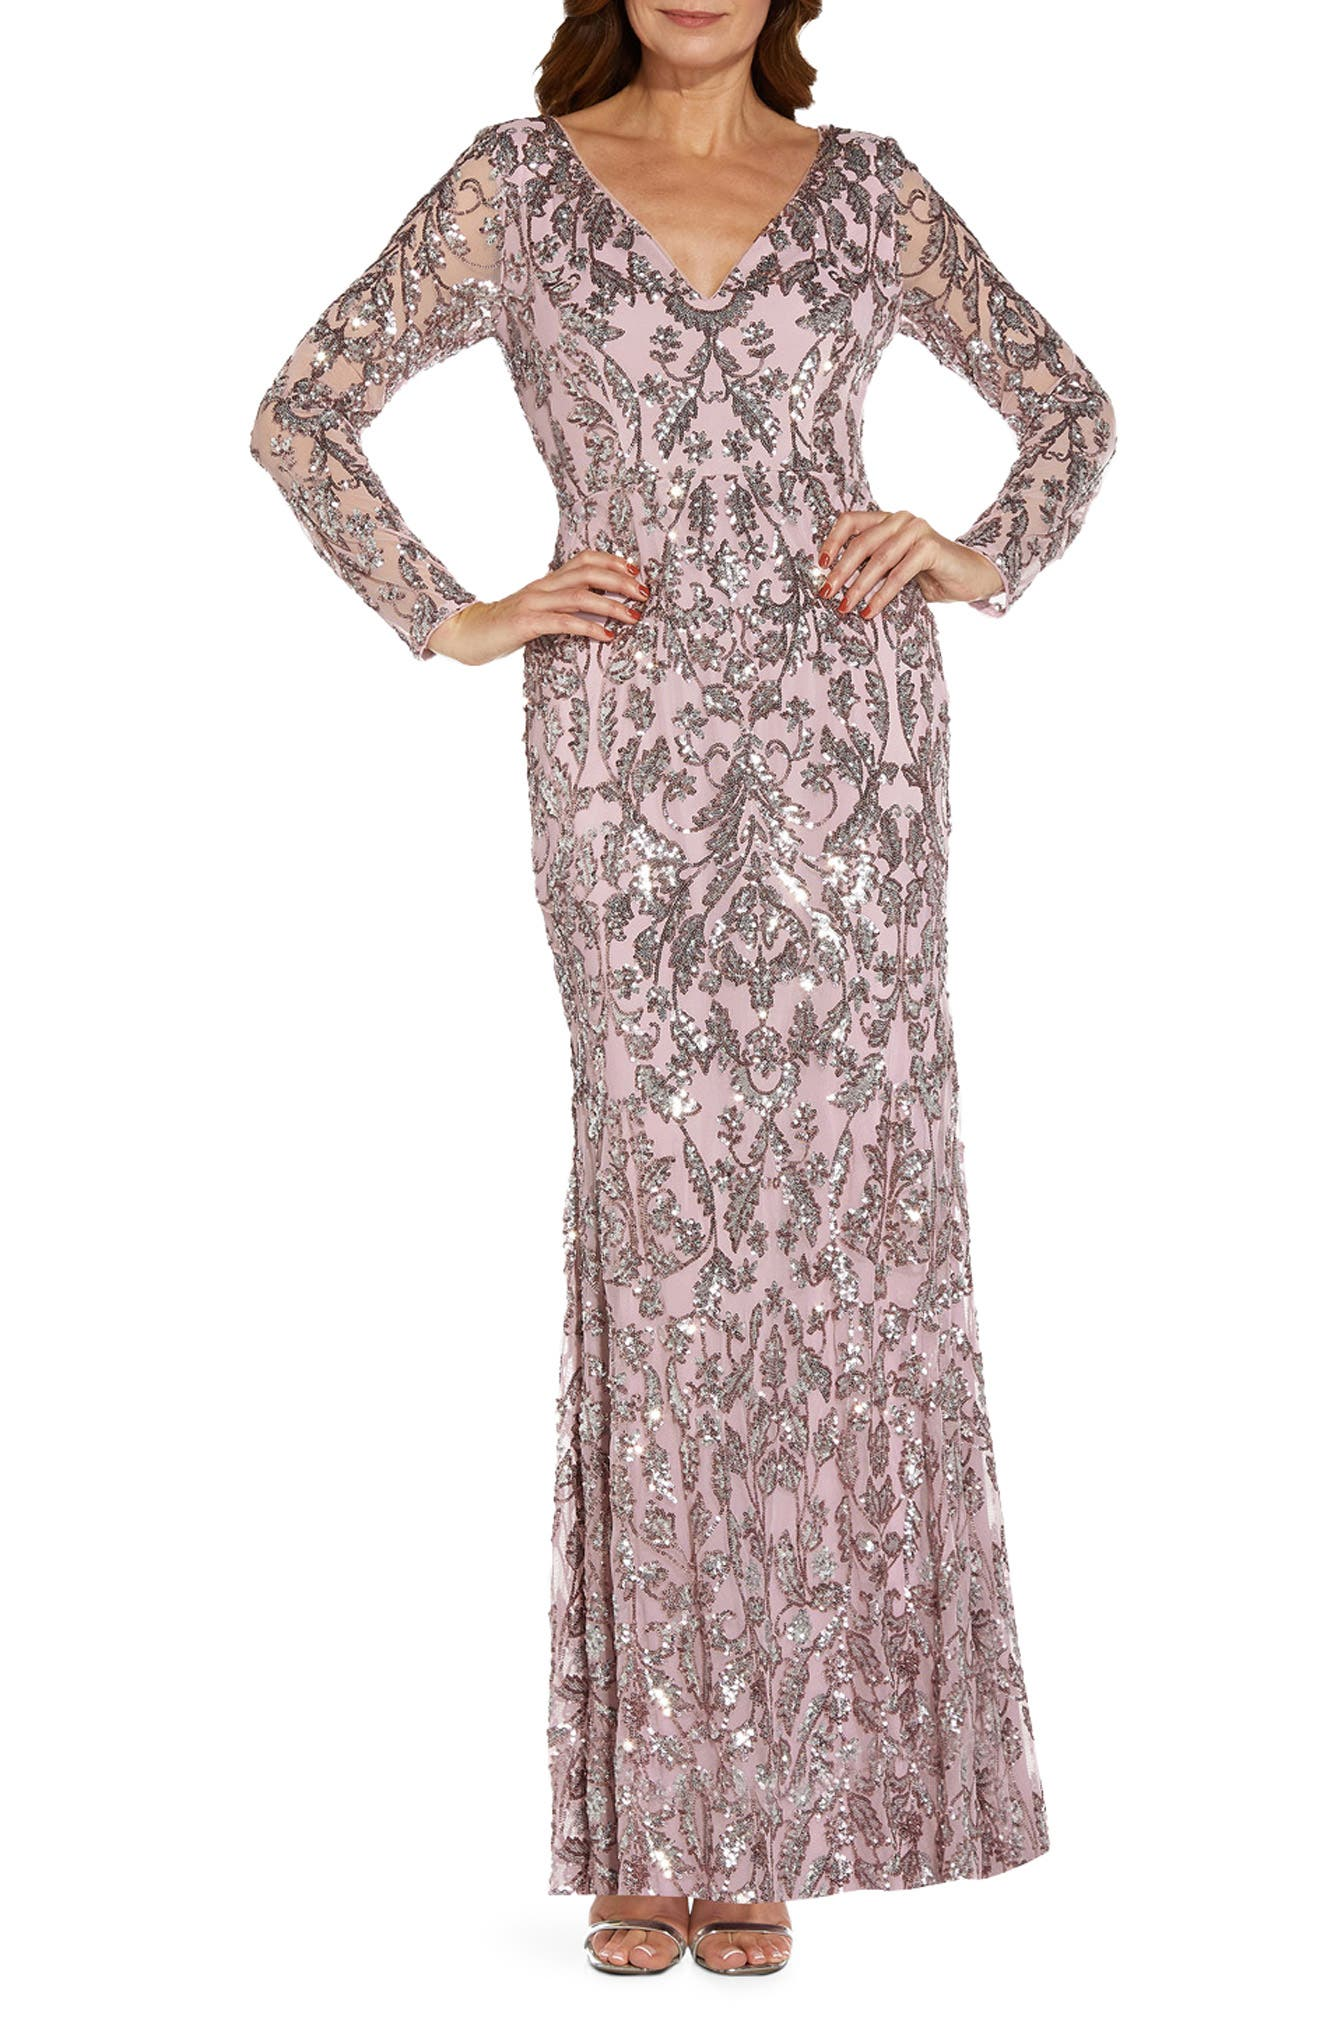 70s Sequin Dresses, Disco Dresses Womens Adrianna Papell Sequin Mesh Long Sleeve Trumpet Gown Size 14 - Pink $279.00 AT vintagedancer.com